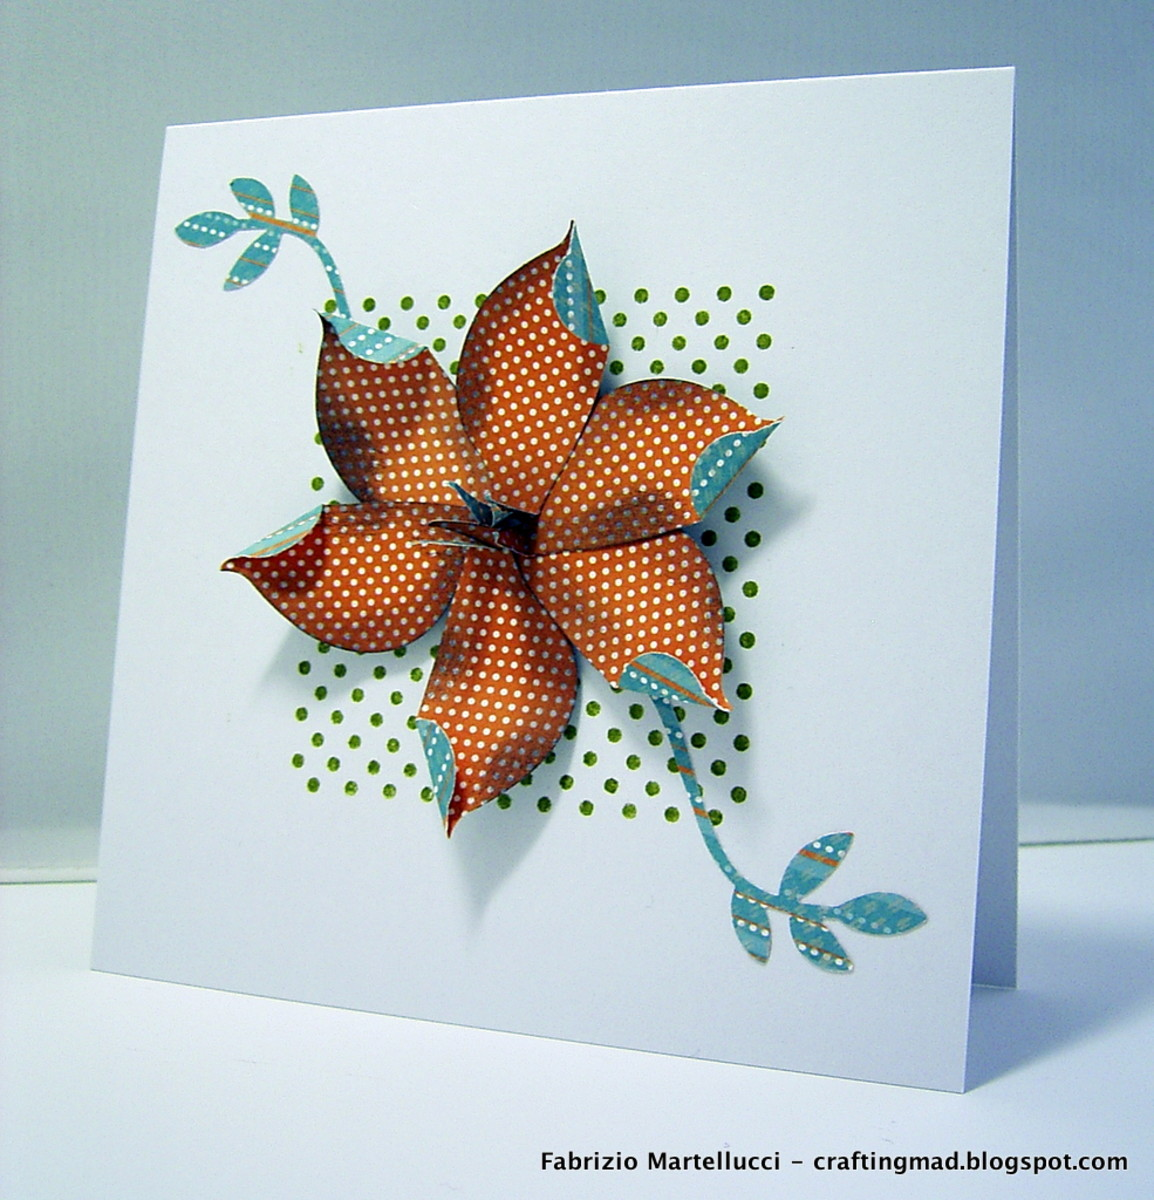 Step-by-Step Instructions to Make Your Own Greeting Cards